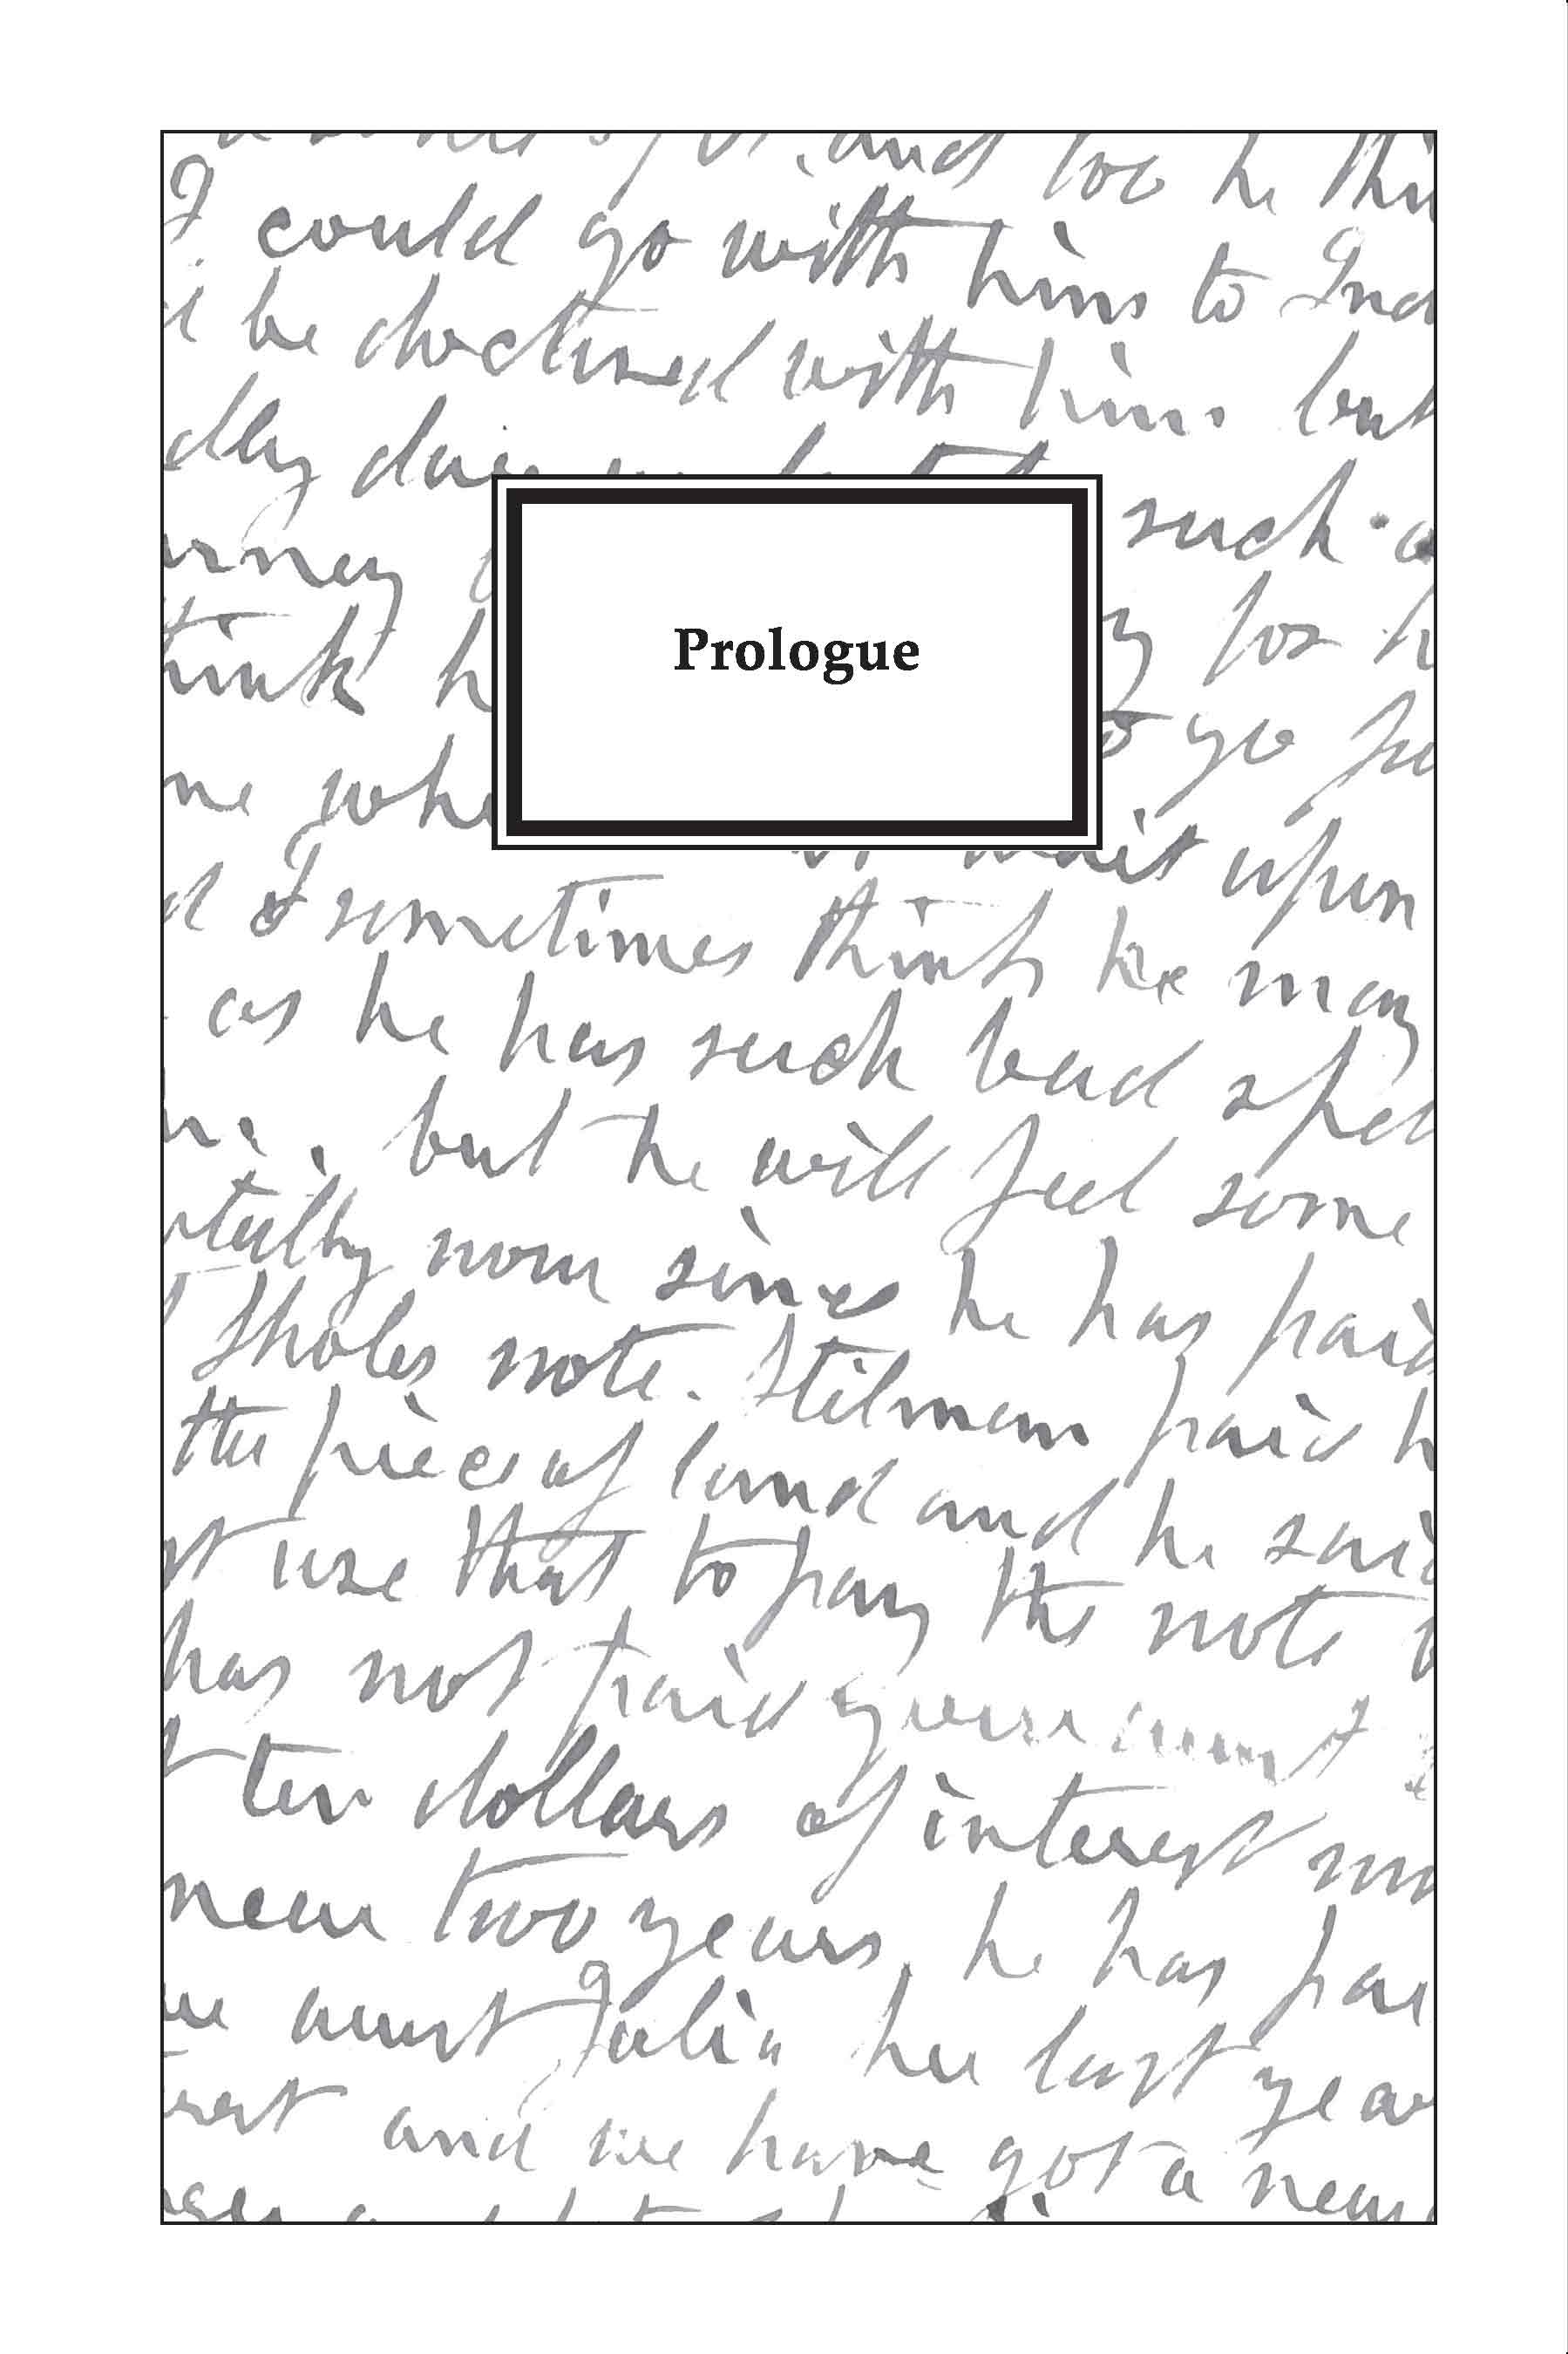 the well prologue